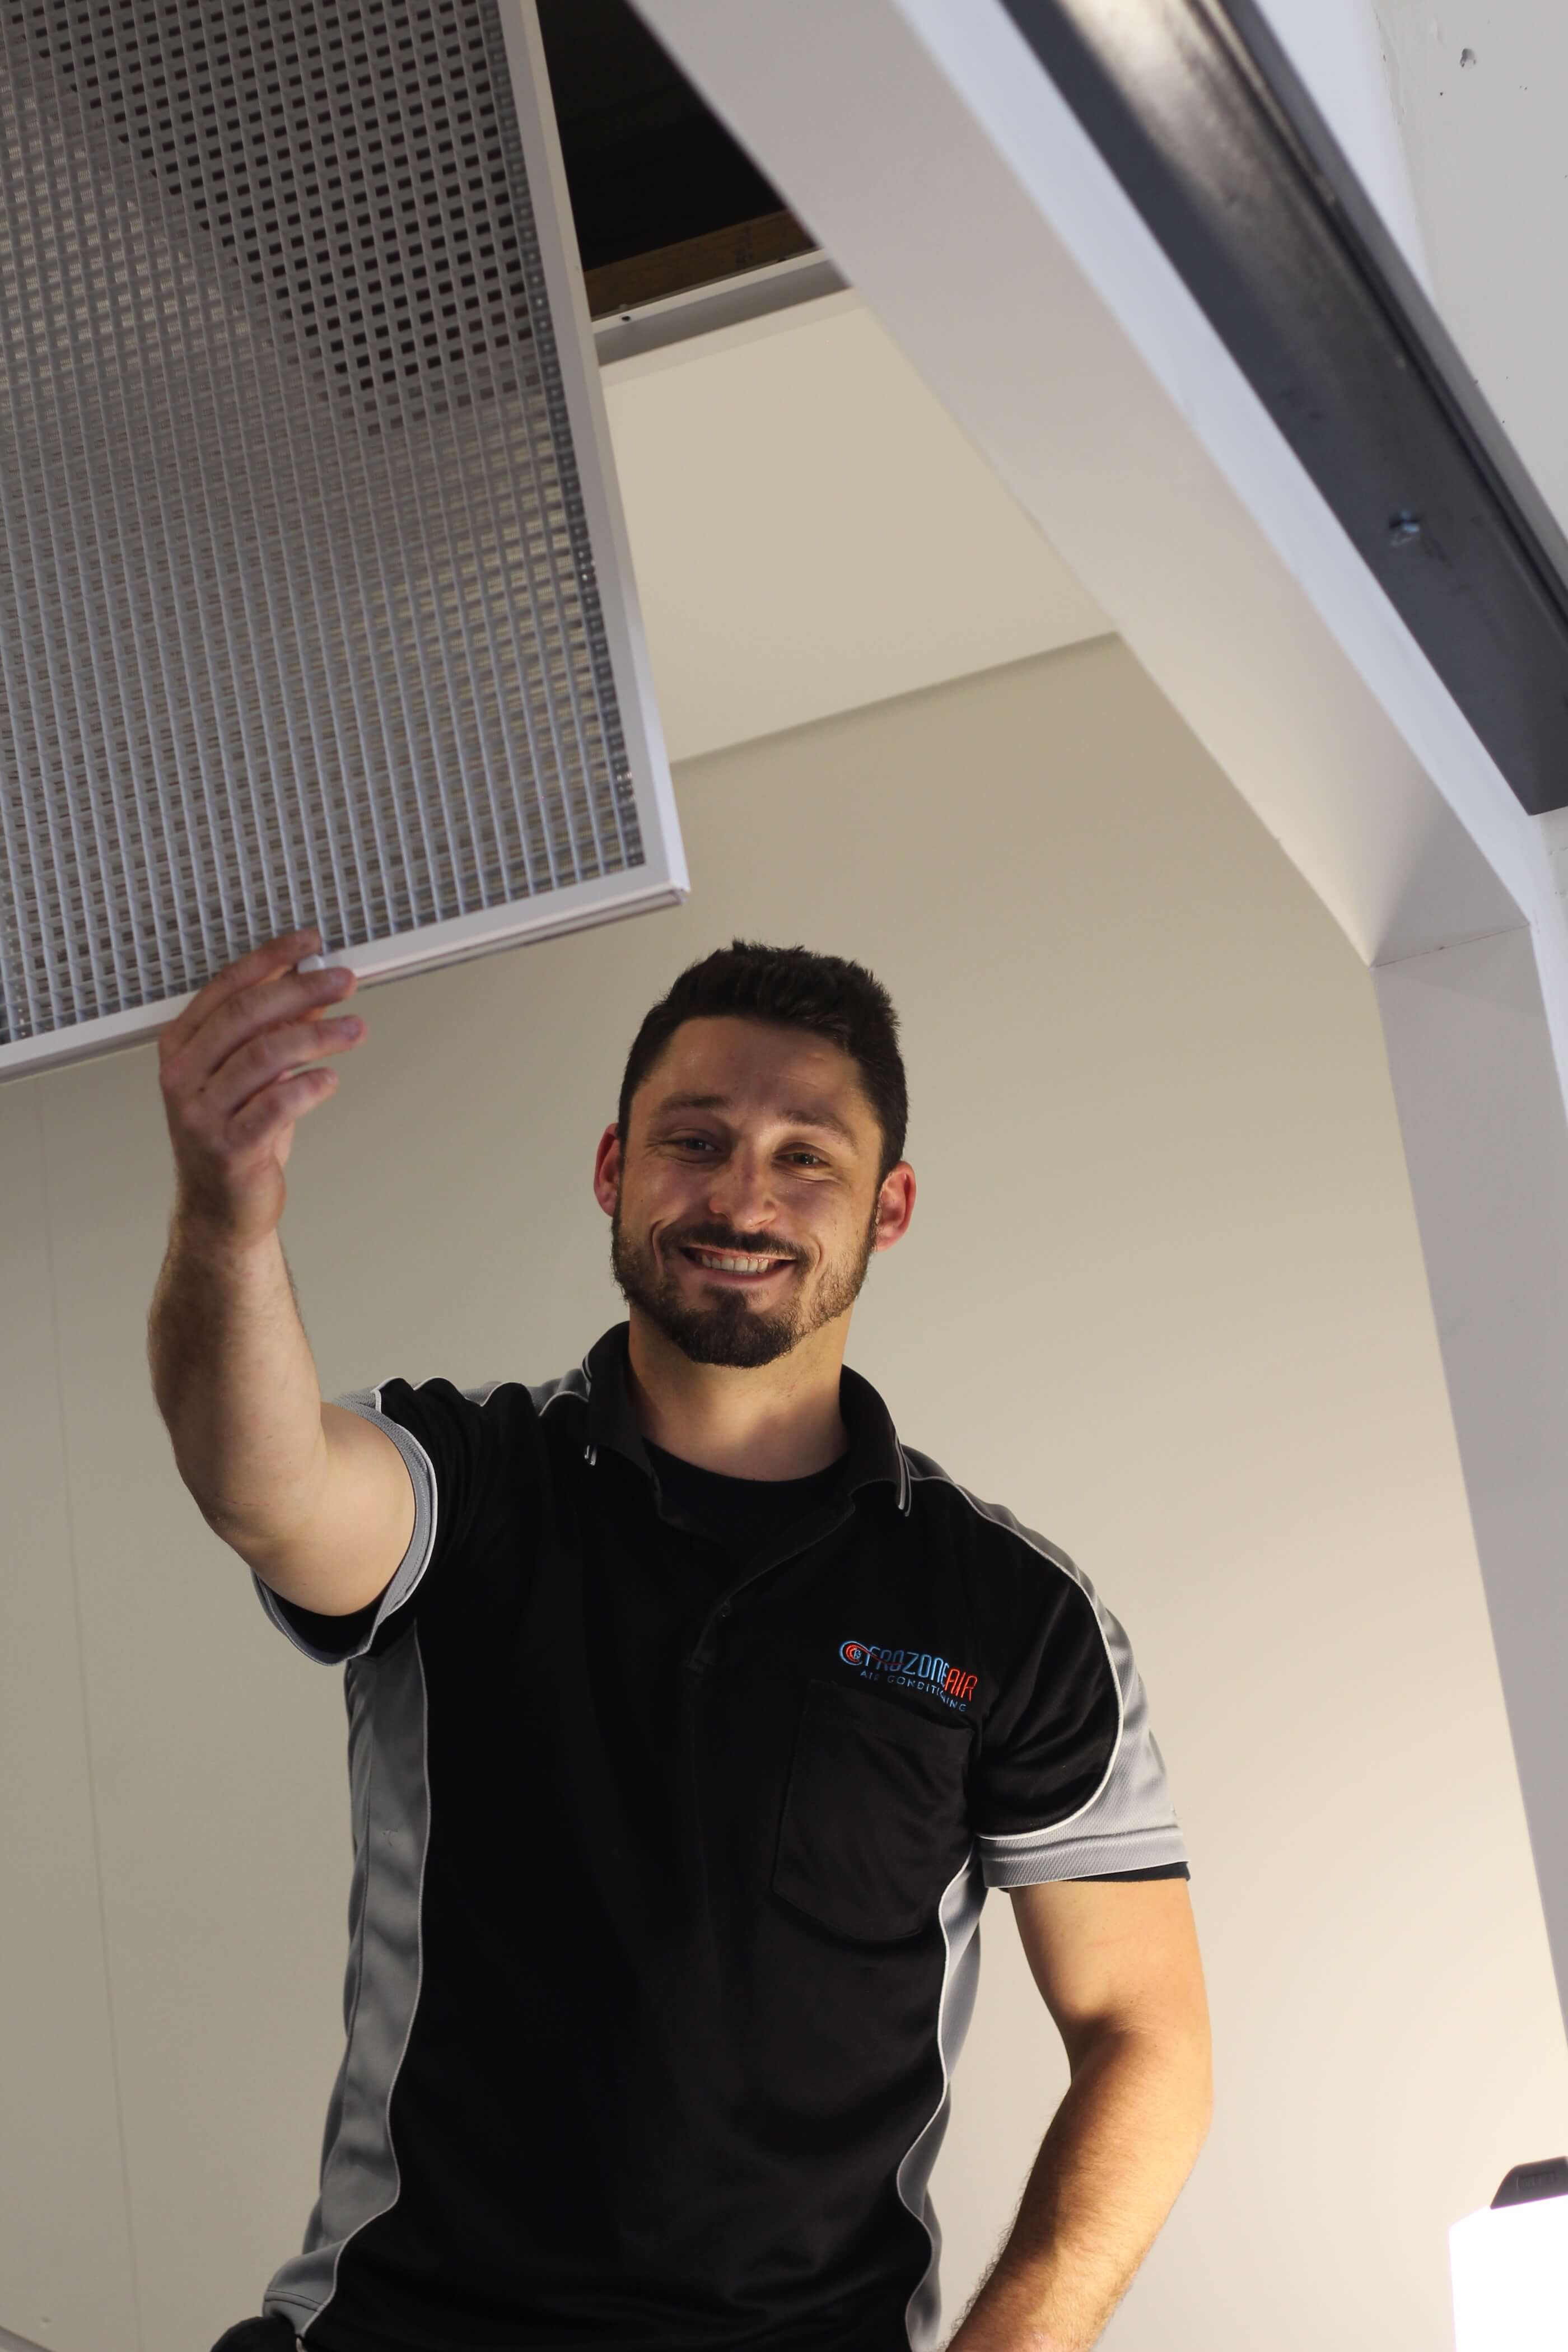 Ducted aircon repairs Sydney